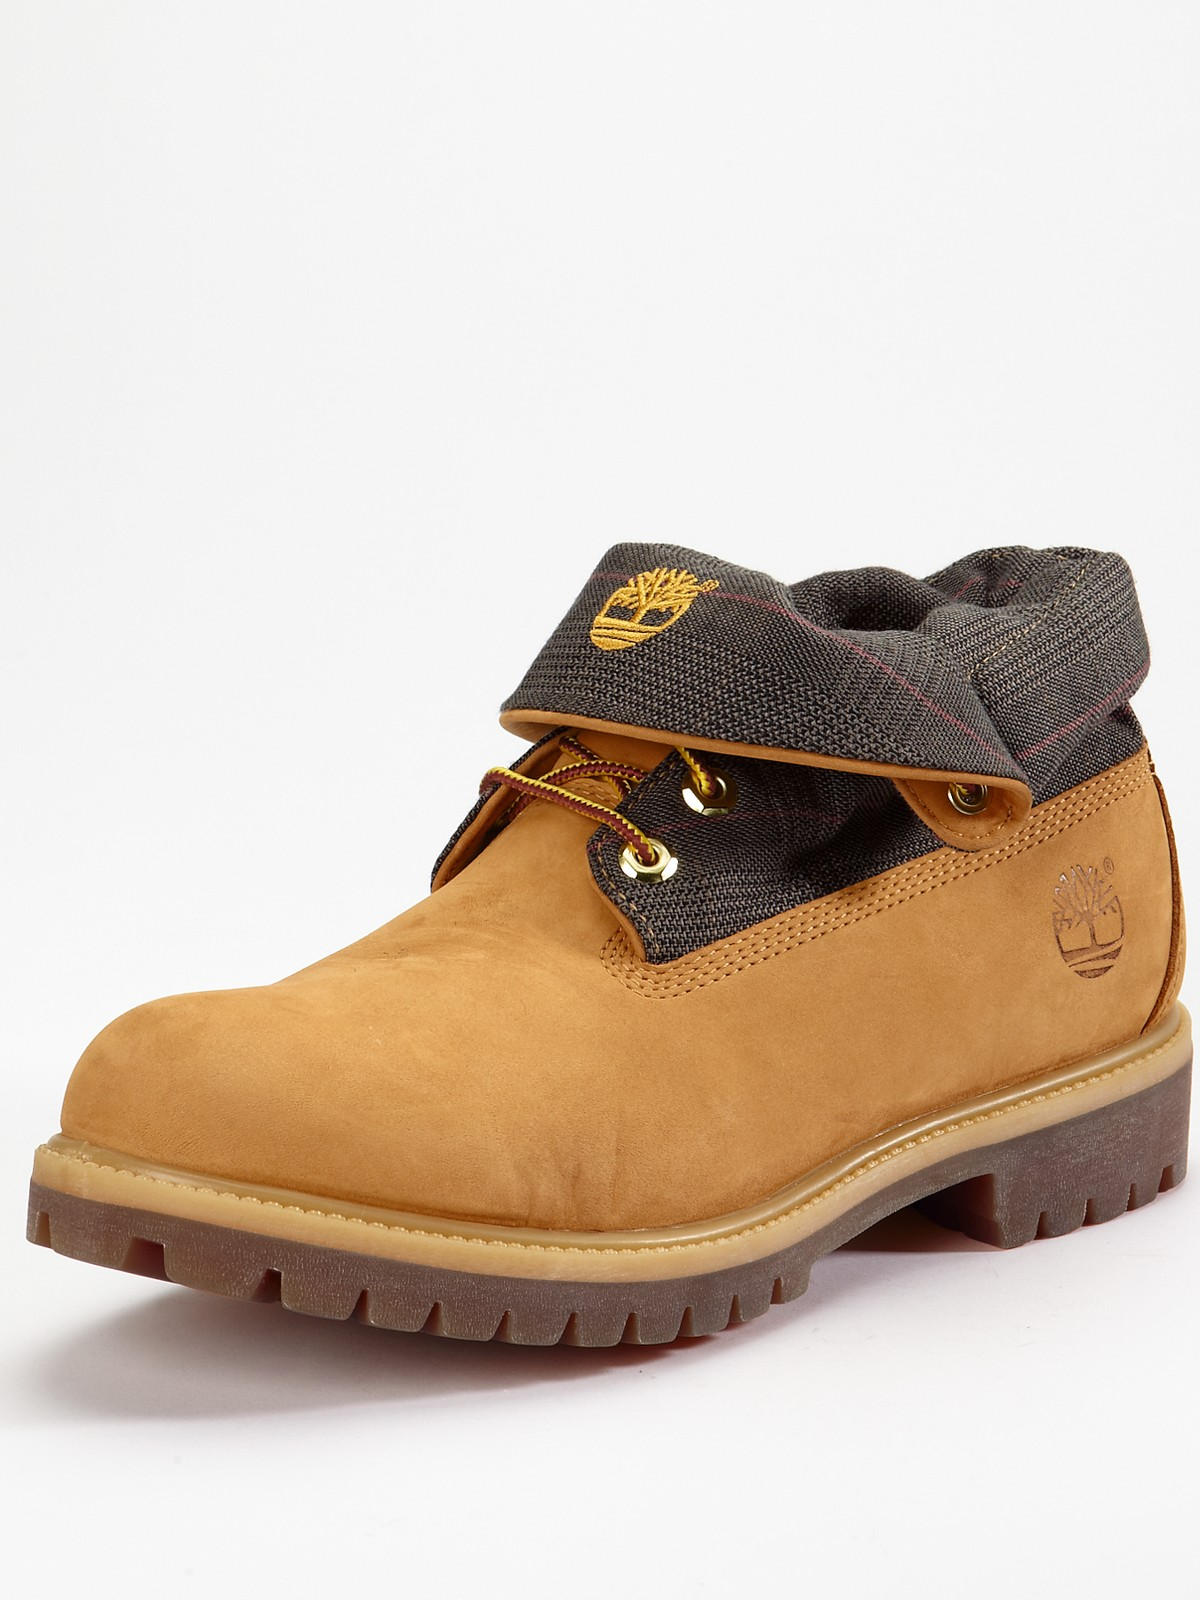 Timberland Boots For Men 2012 Timberland Mens Roll T...